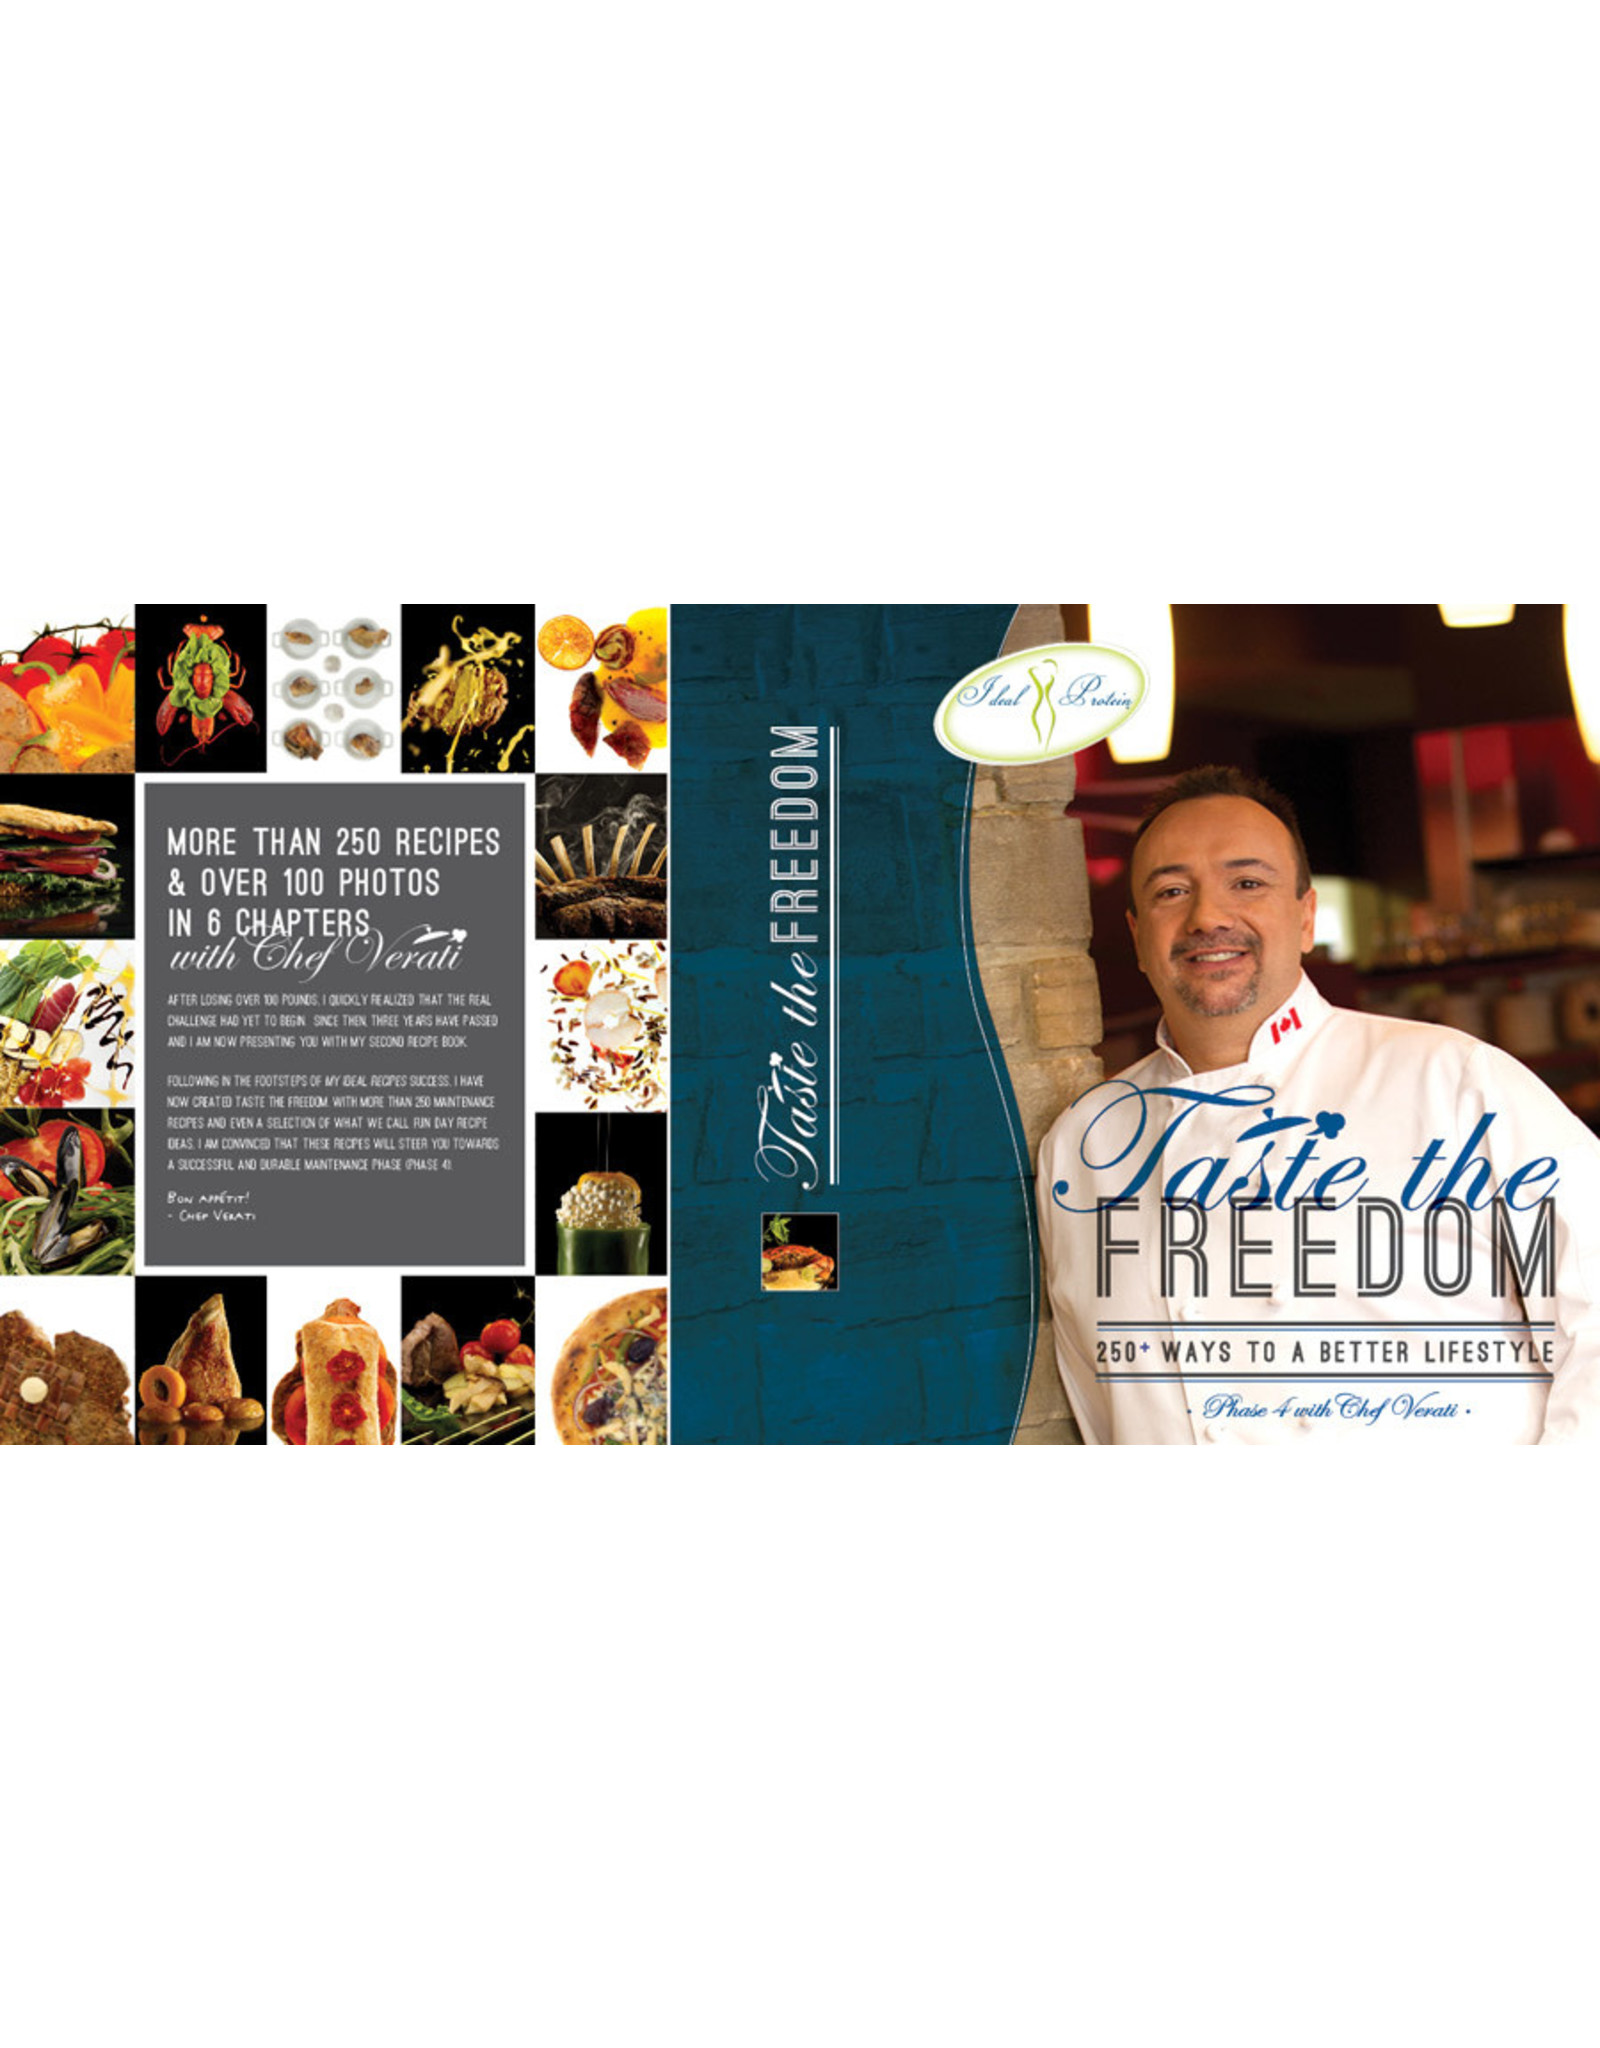 Ideal Protein Taste the Freedom - 250+ Phase 3 and 4 Recipes by Chef Verati